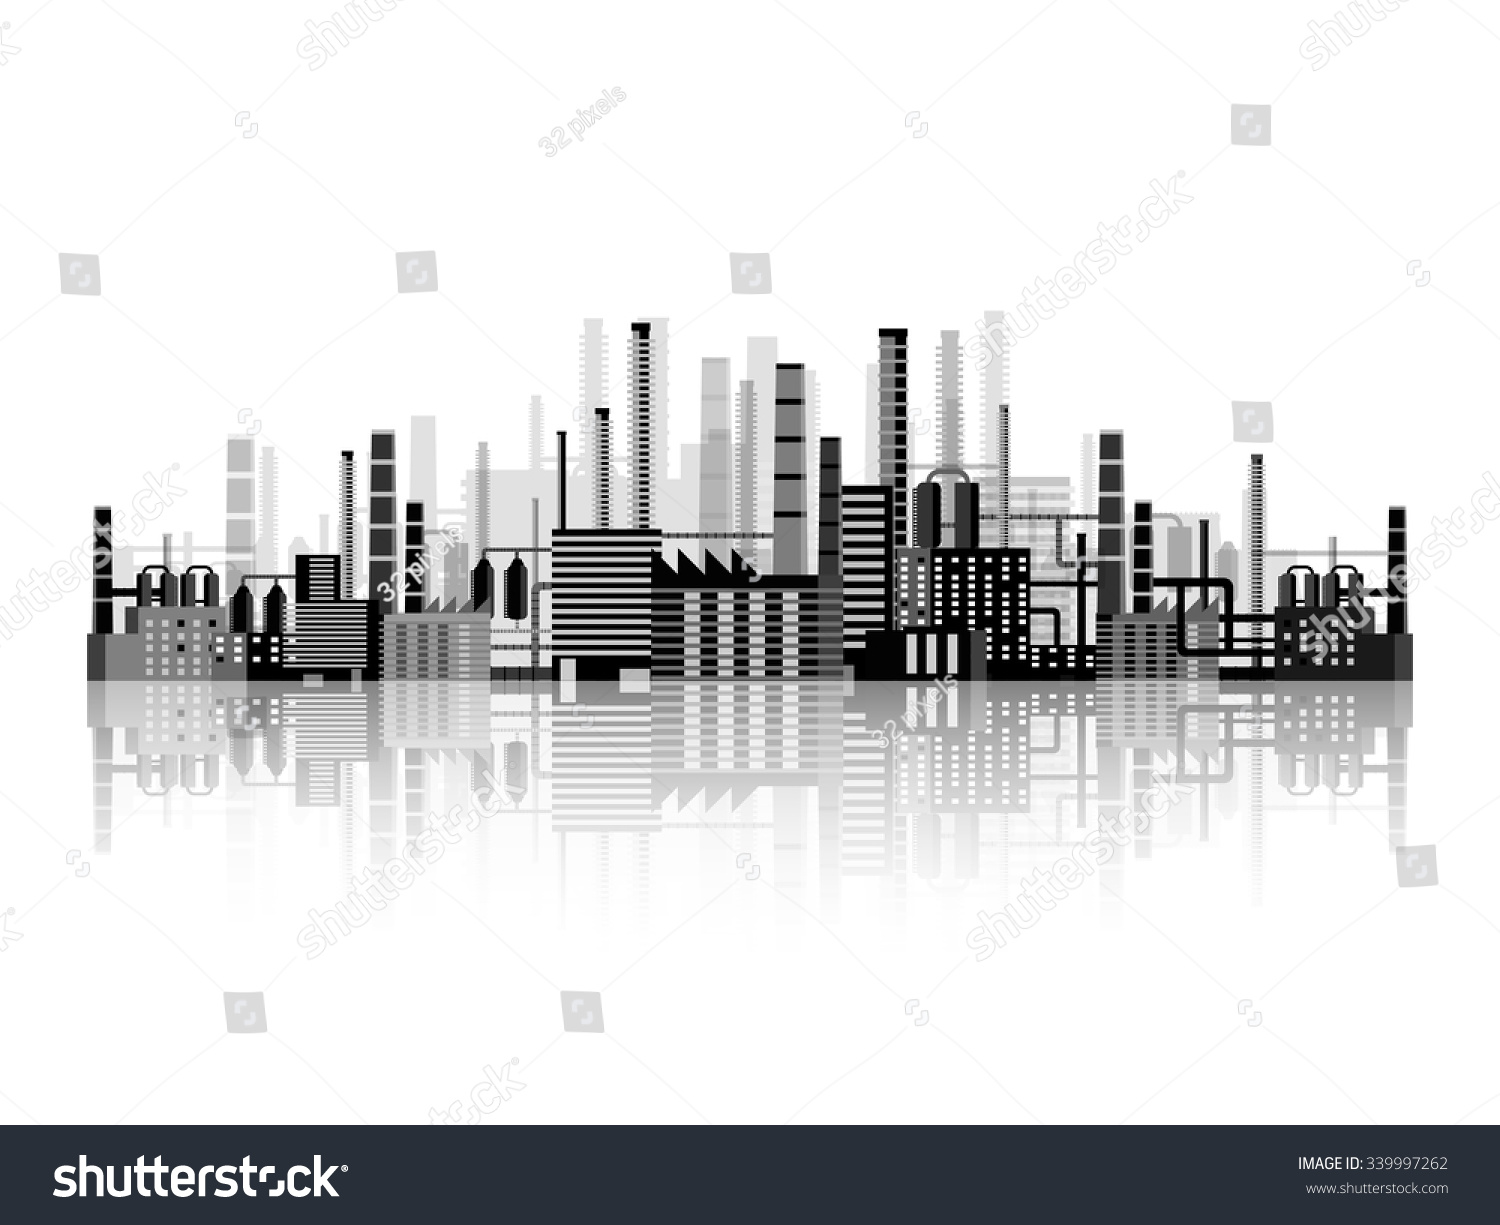 Vector Illustration Industry Power Plant Factory Stock Oil Diagram Industrial Silhouettes Engineering Construction